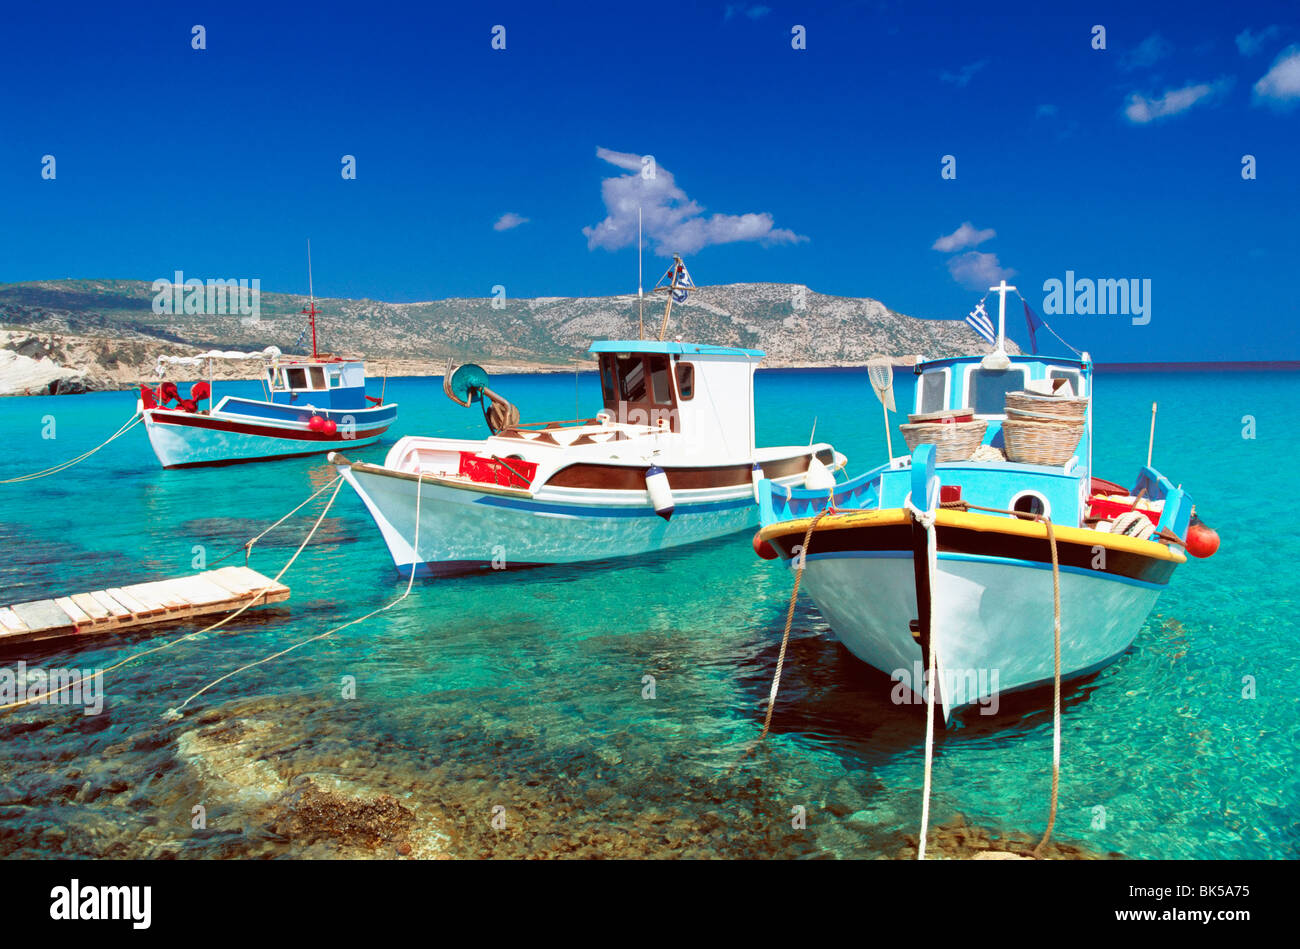 Fishing boats at Anopi Beach, Karpathos, Dodecanese, Greek Islands, Greece, Europe Stock Photo